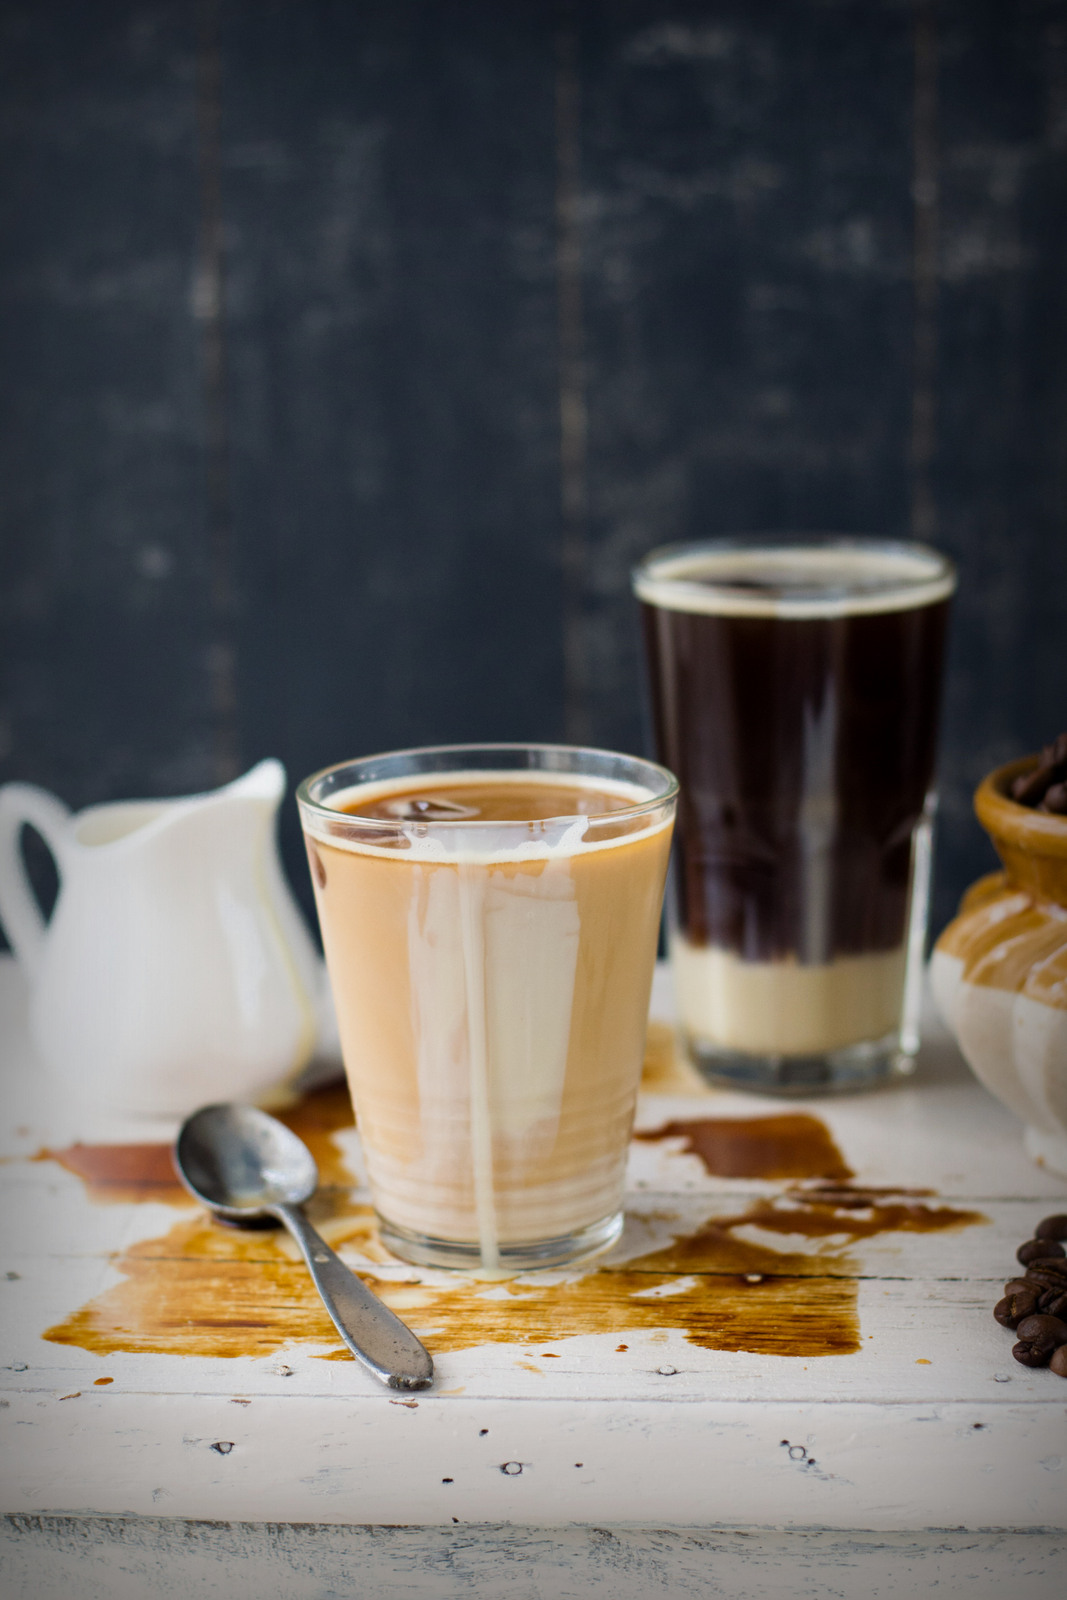 Vietnamese Iced Coffee Philips One Touch Espresso